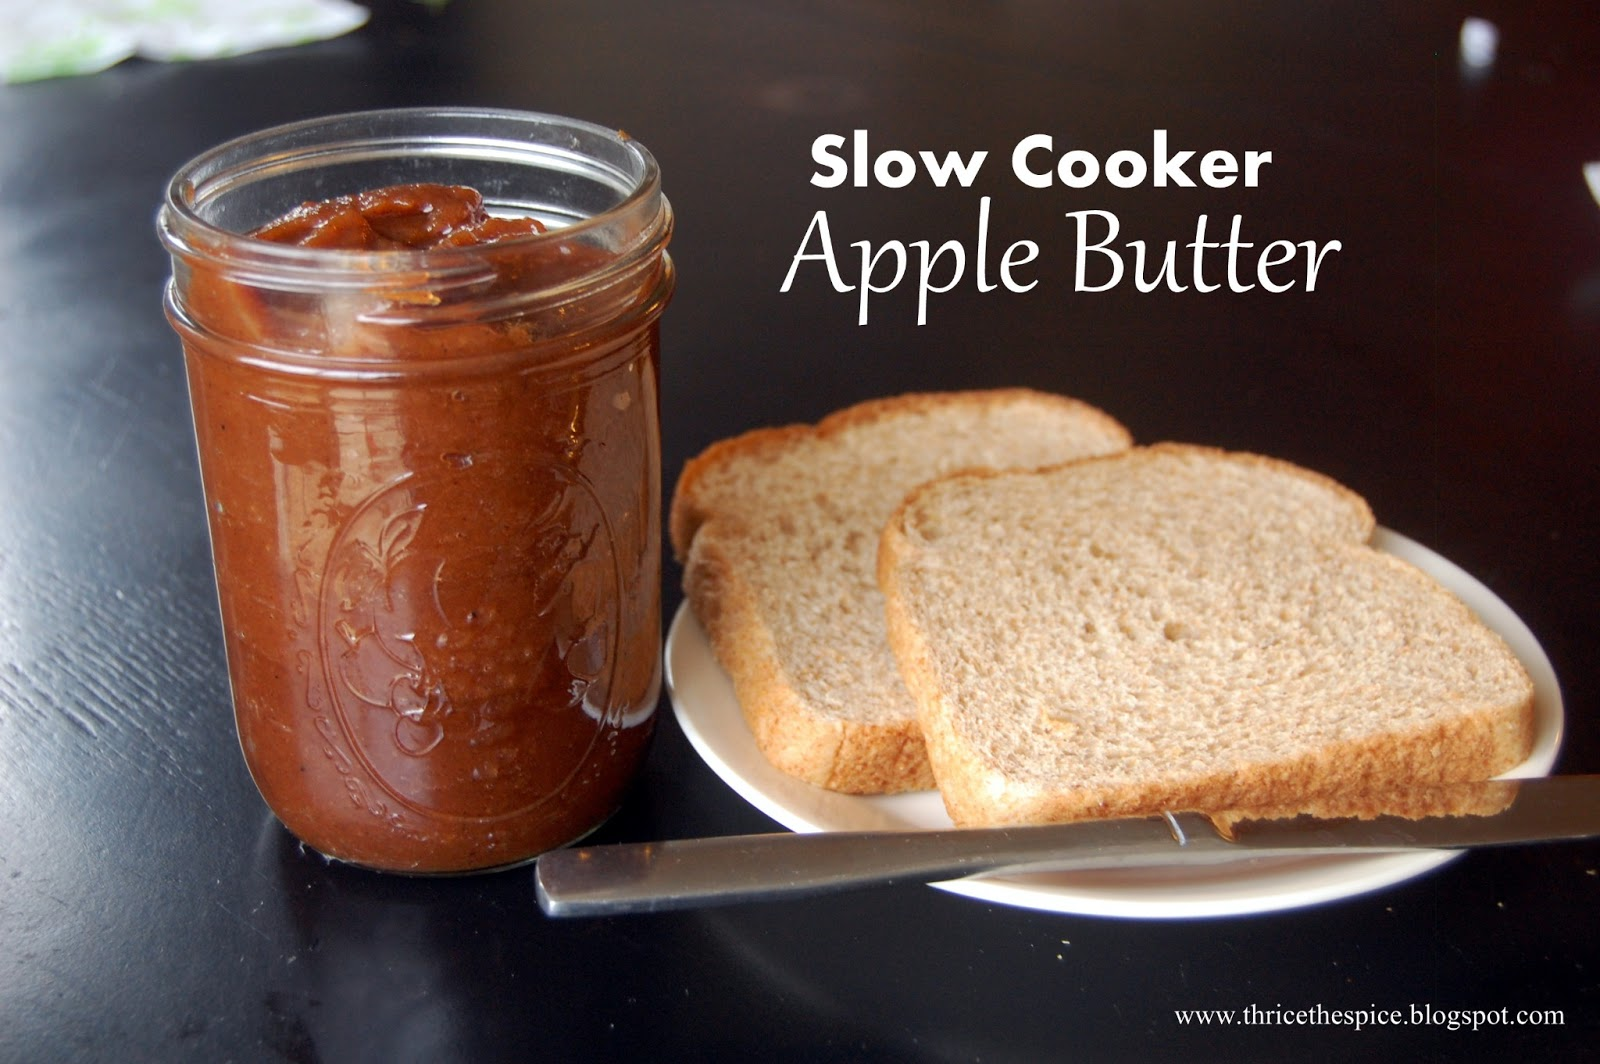 ThriceTheSpice: Slow Cooker Apple Butter